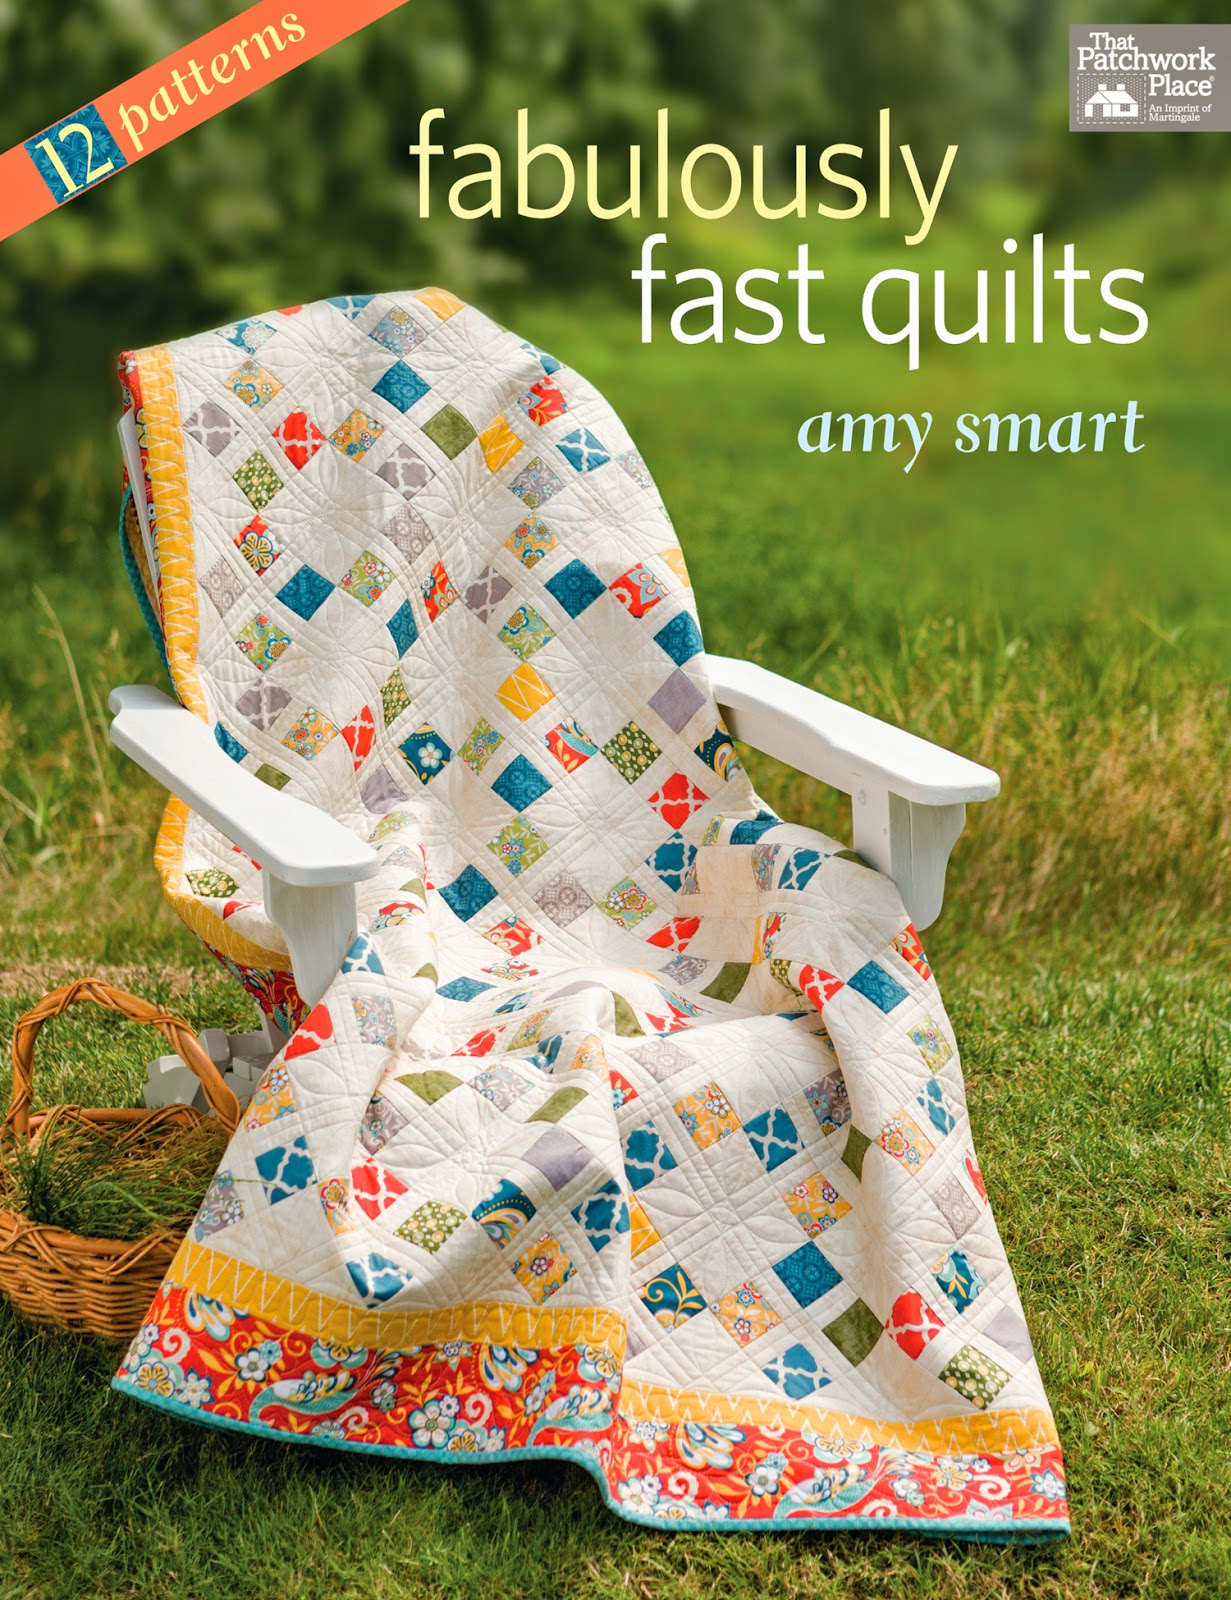 Book: Fabulously Fast Quilts by Amy Smart